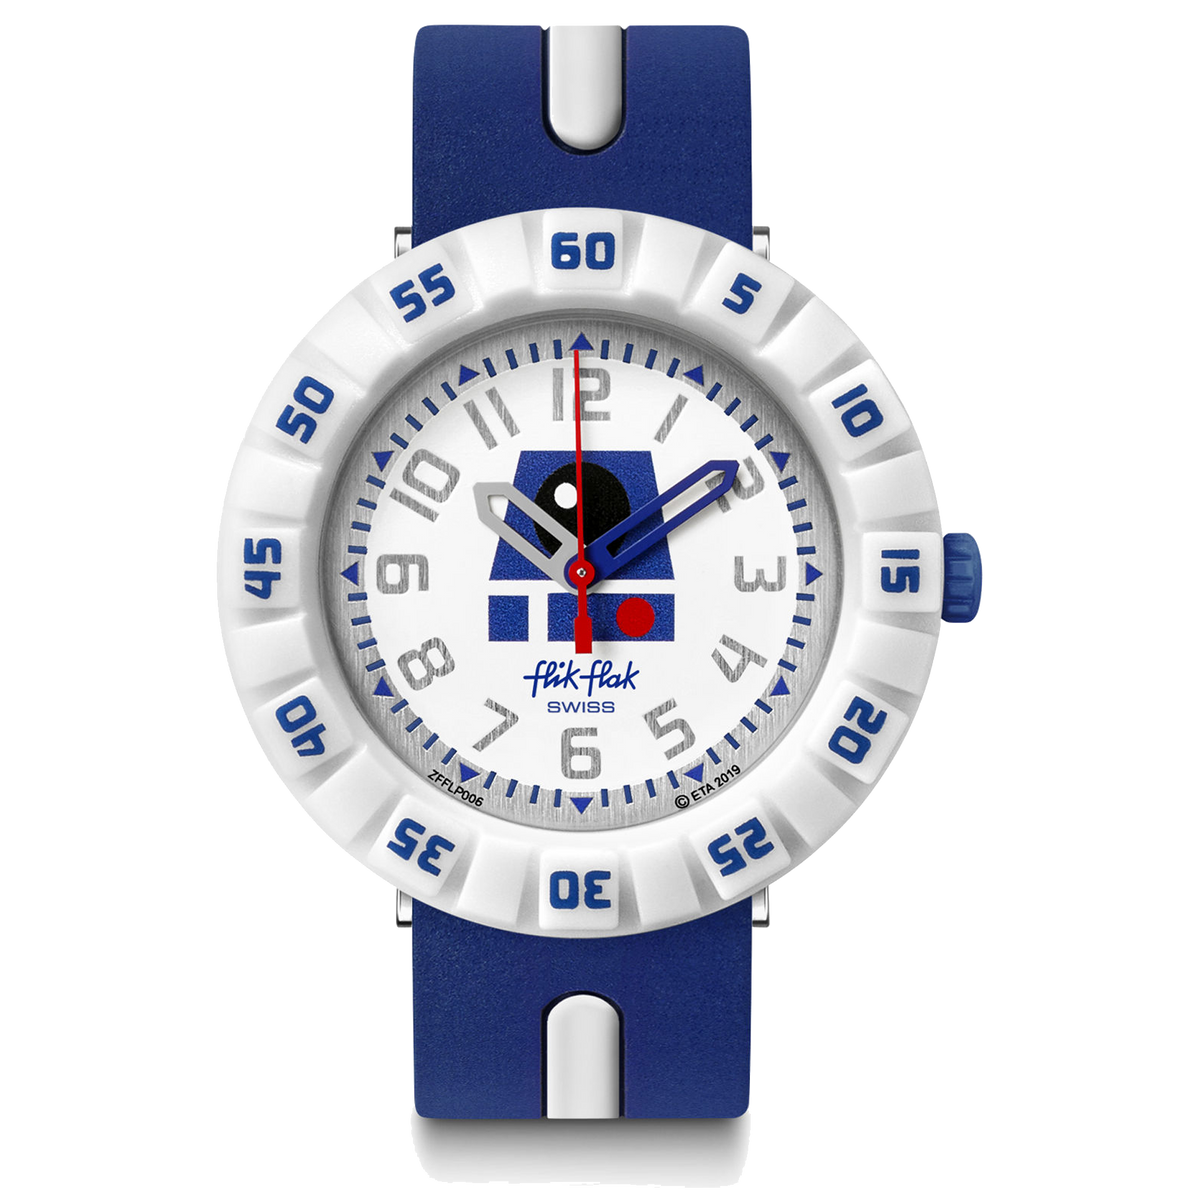 Swatch Flik Flak - Star Wars R2-D2